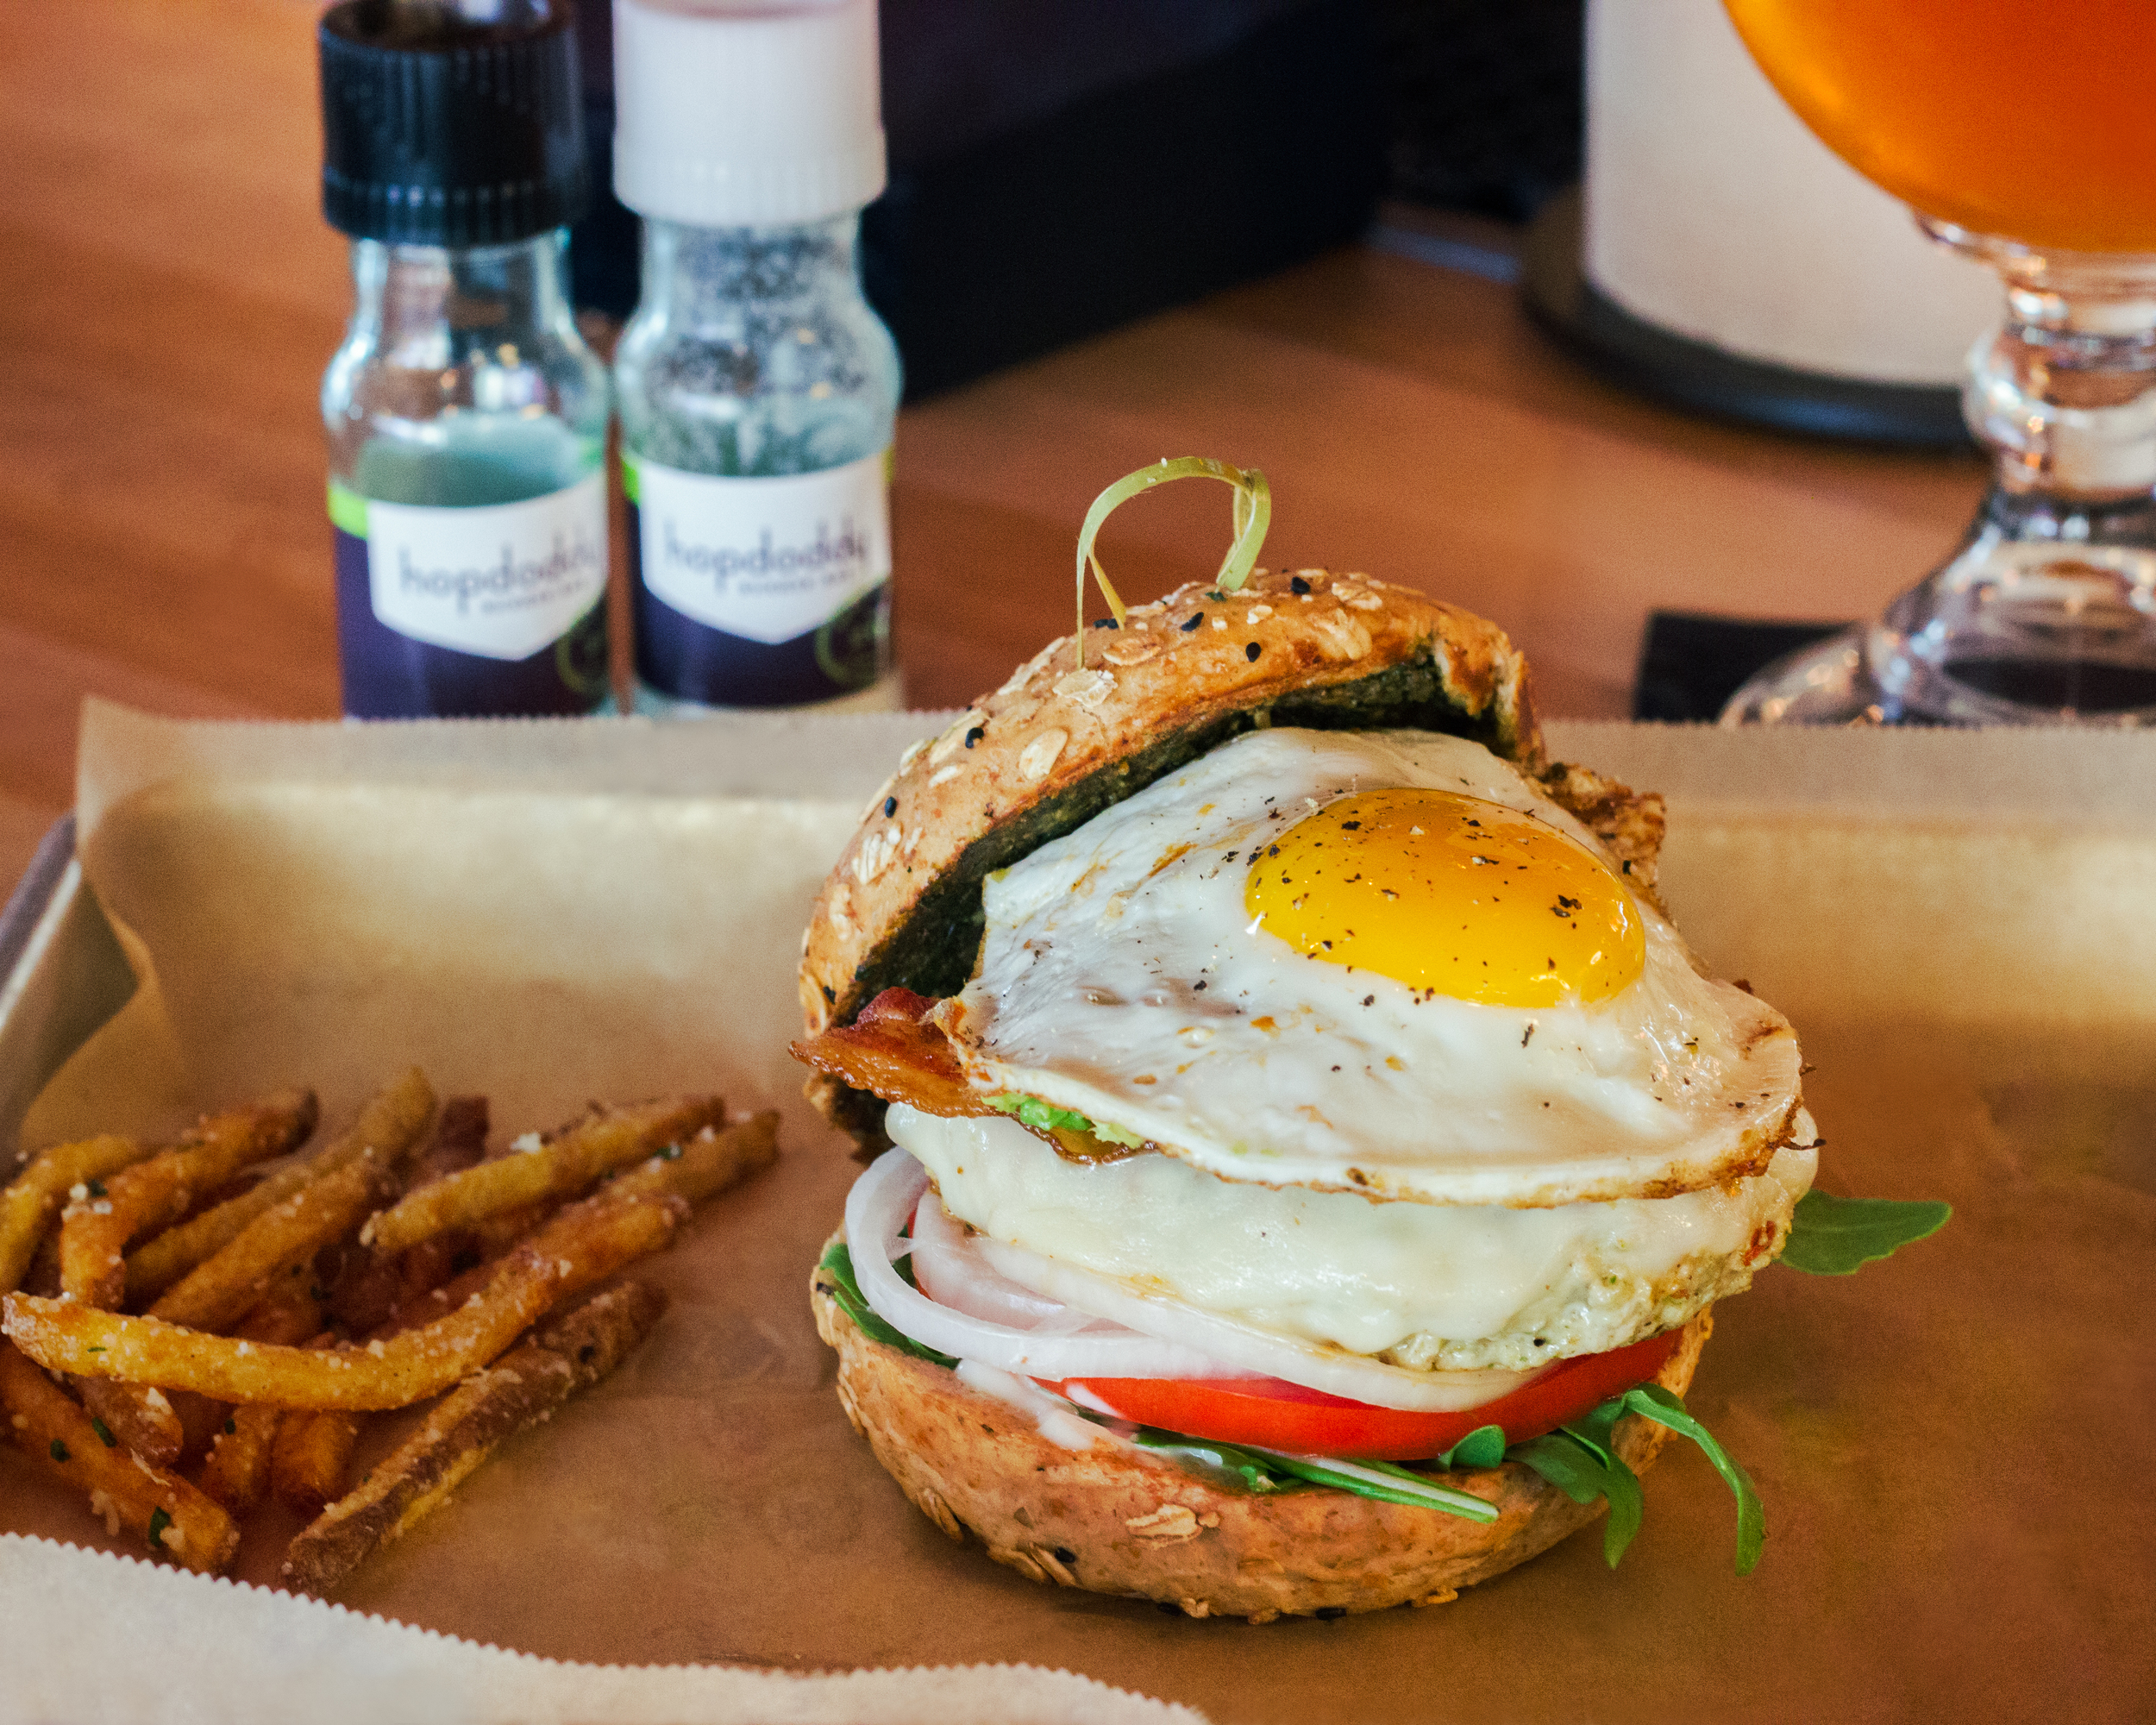 Place: HopDoddy